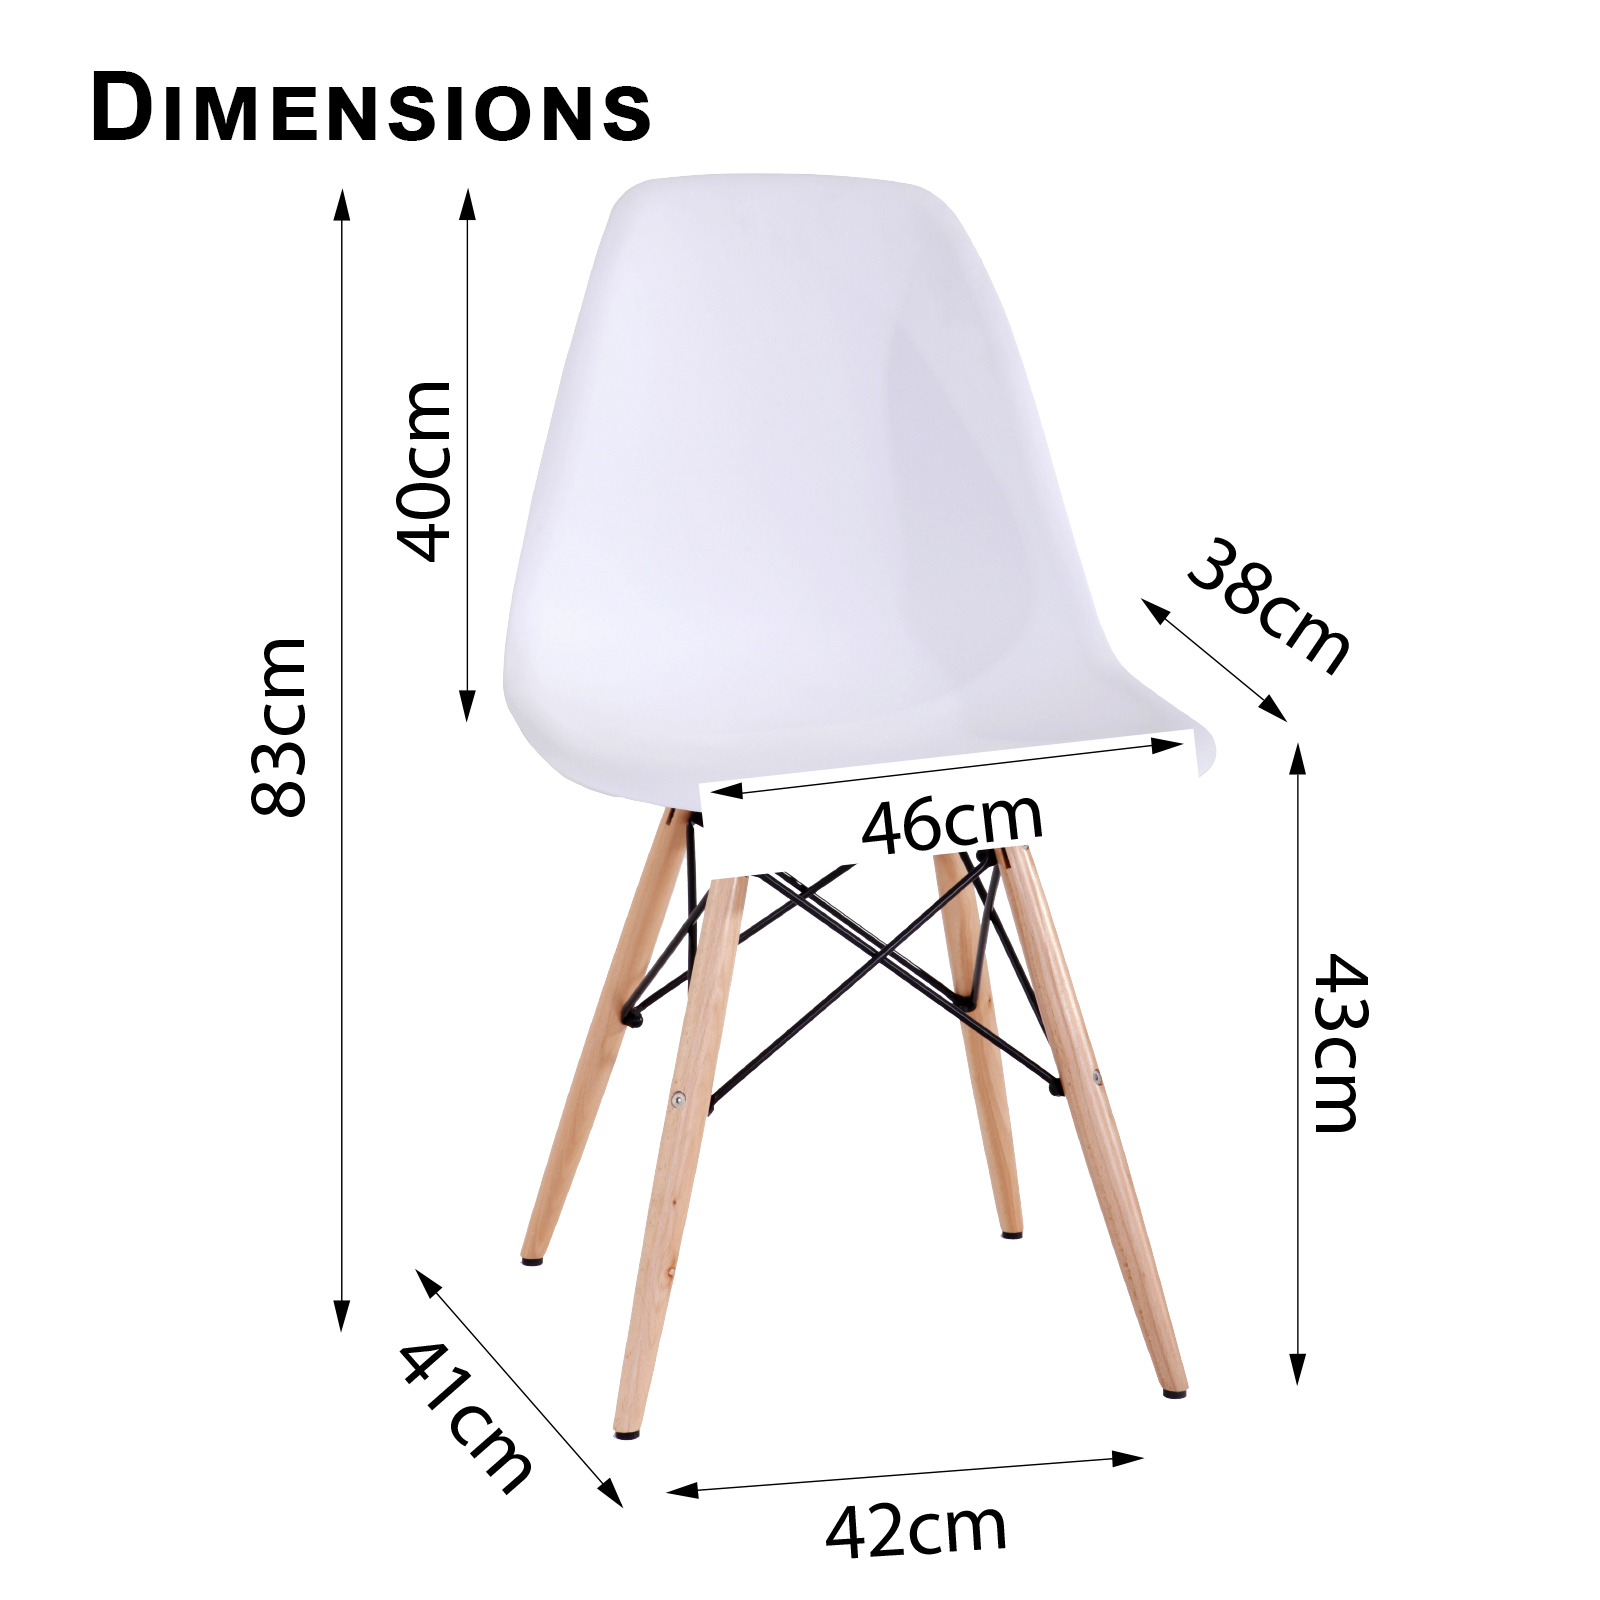 8 x Retro Replica Eames Chick DSW Dining Chairs Office  : Eames Chick White Dimensions from www.ebay.com.au size 1600 x 1600 jpeg 338kB